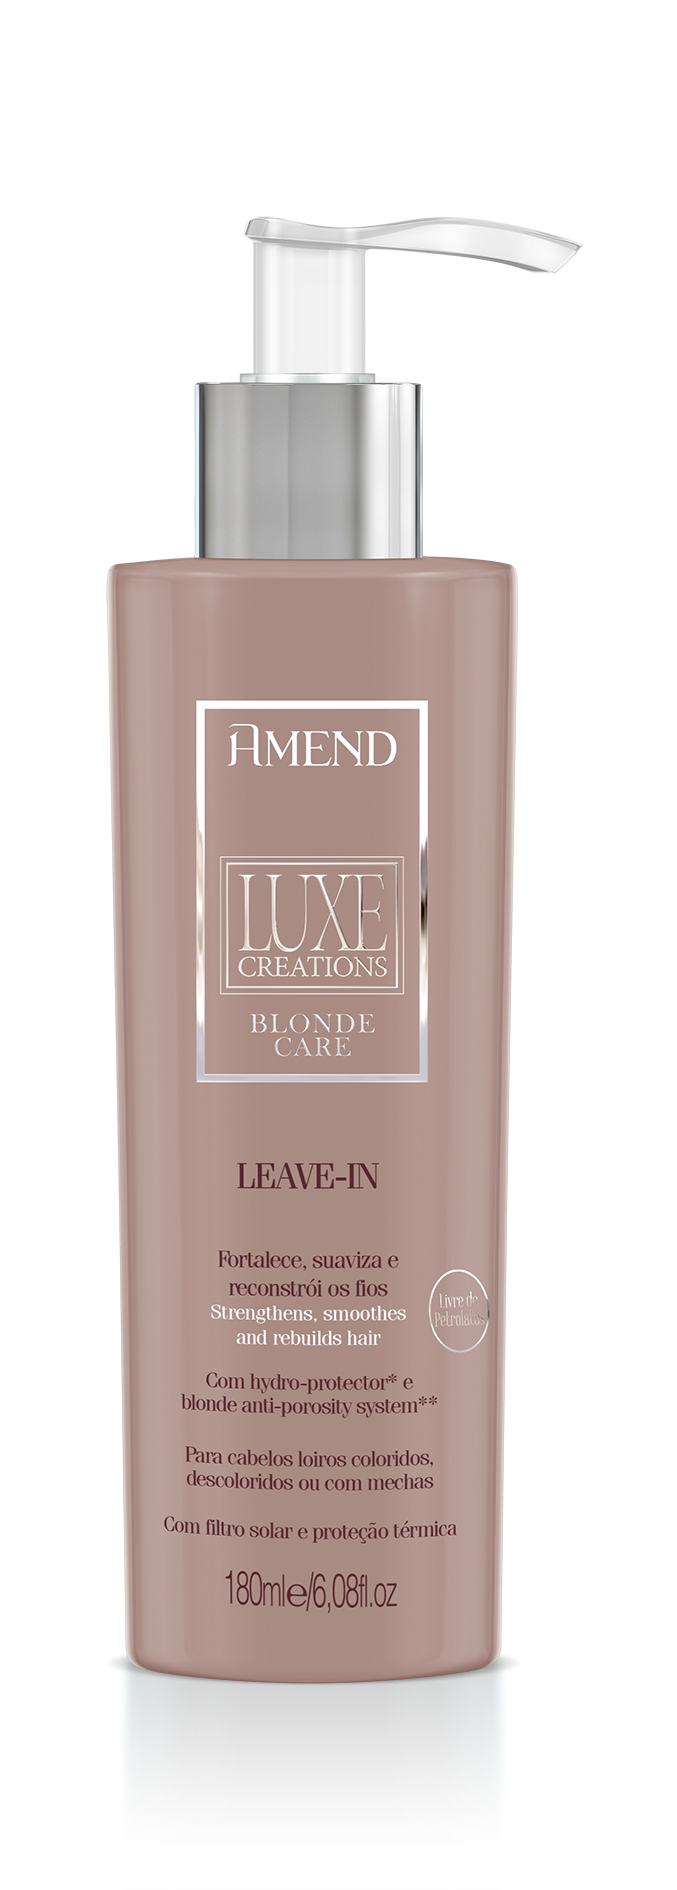 Leave In Luxe Creations Blonde Care Amend 180ml